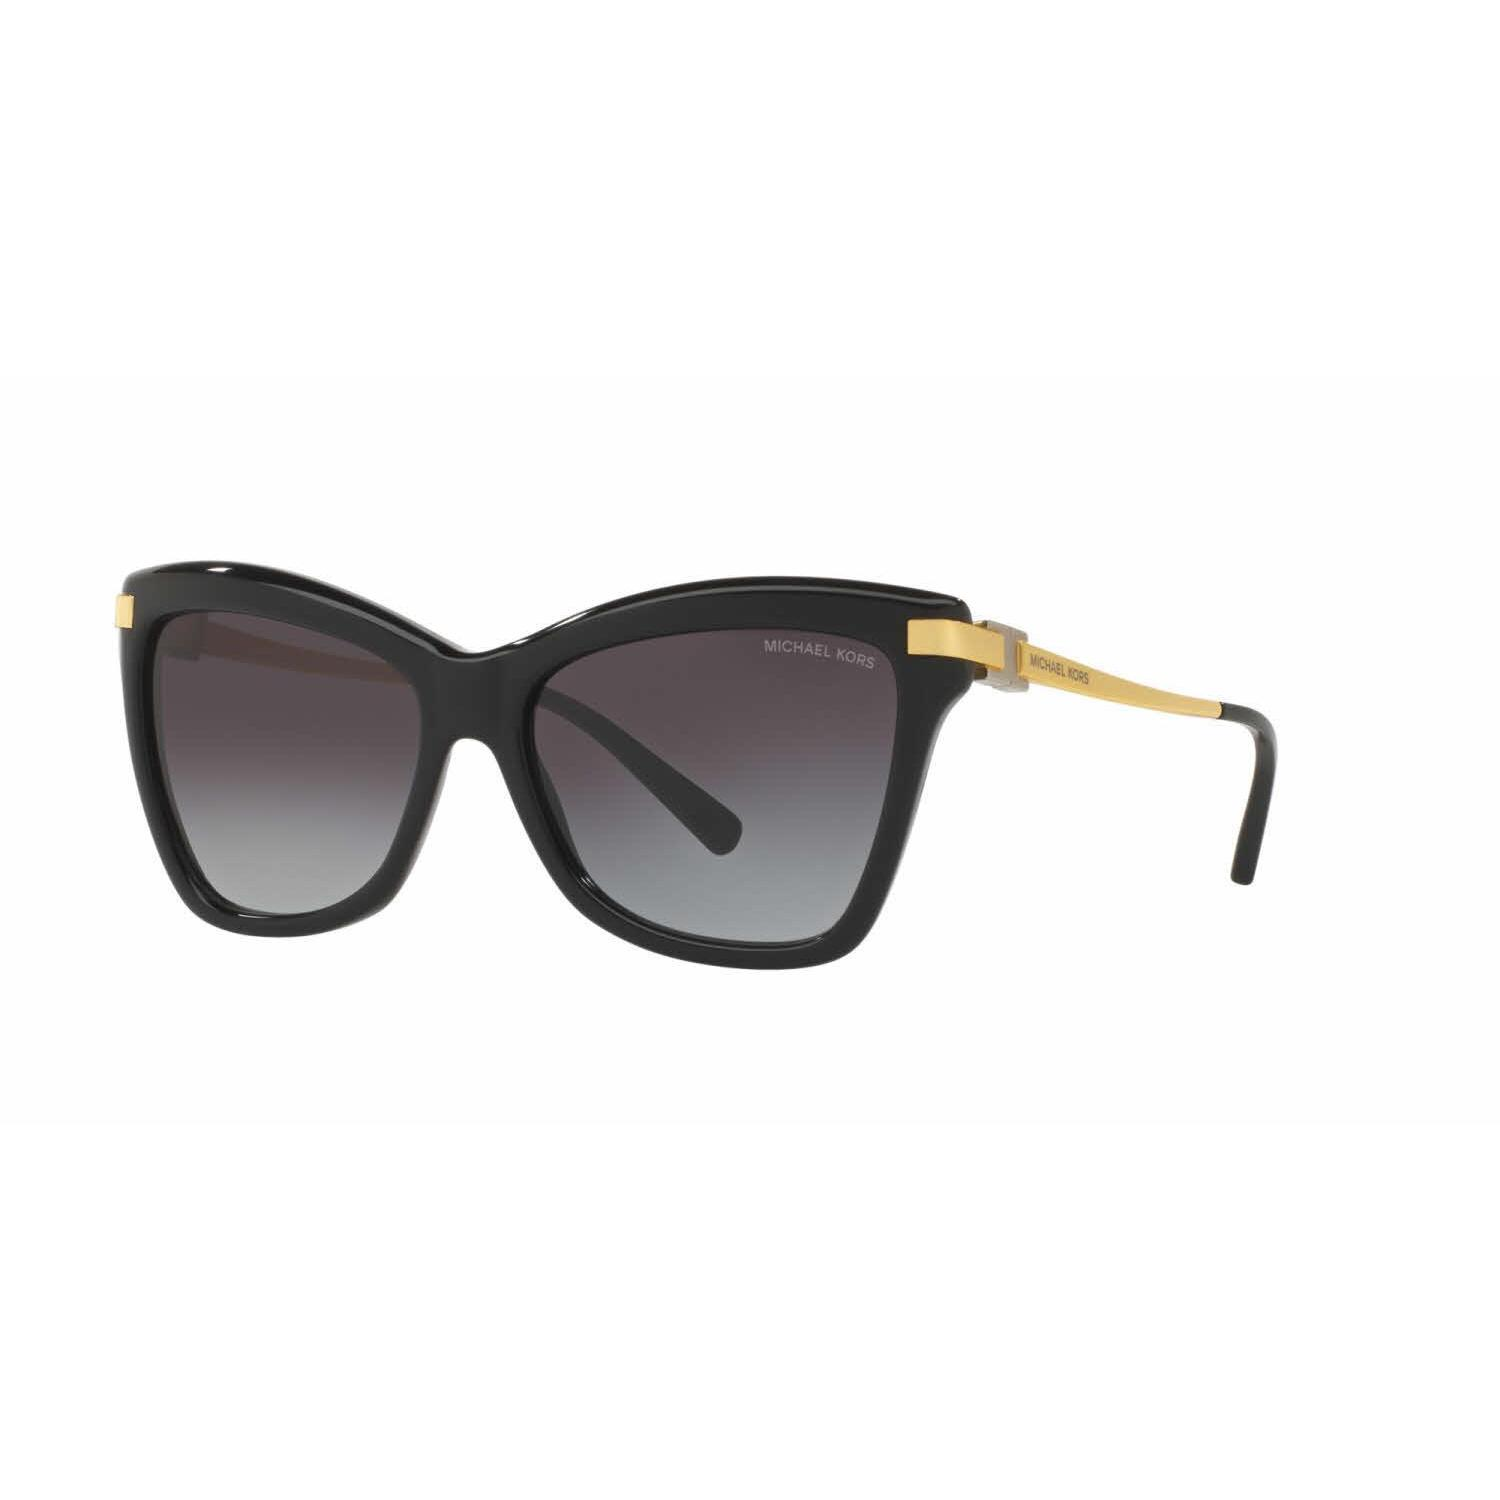 0f09dd71ca Michael Kors Women MK2027 AUDRINA III 317111 Black Metal Cat Eye Sunglasses  - Free Shipping Today - Overstock.com - 20032456